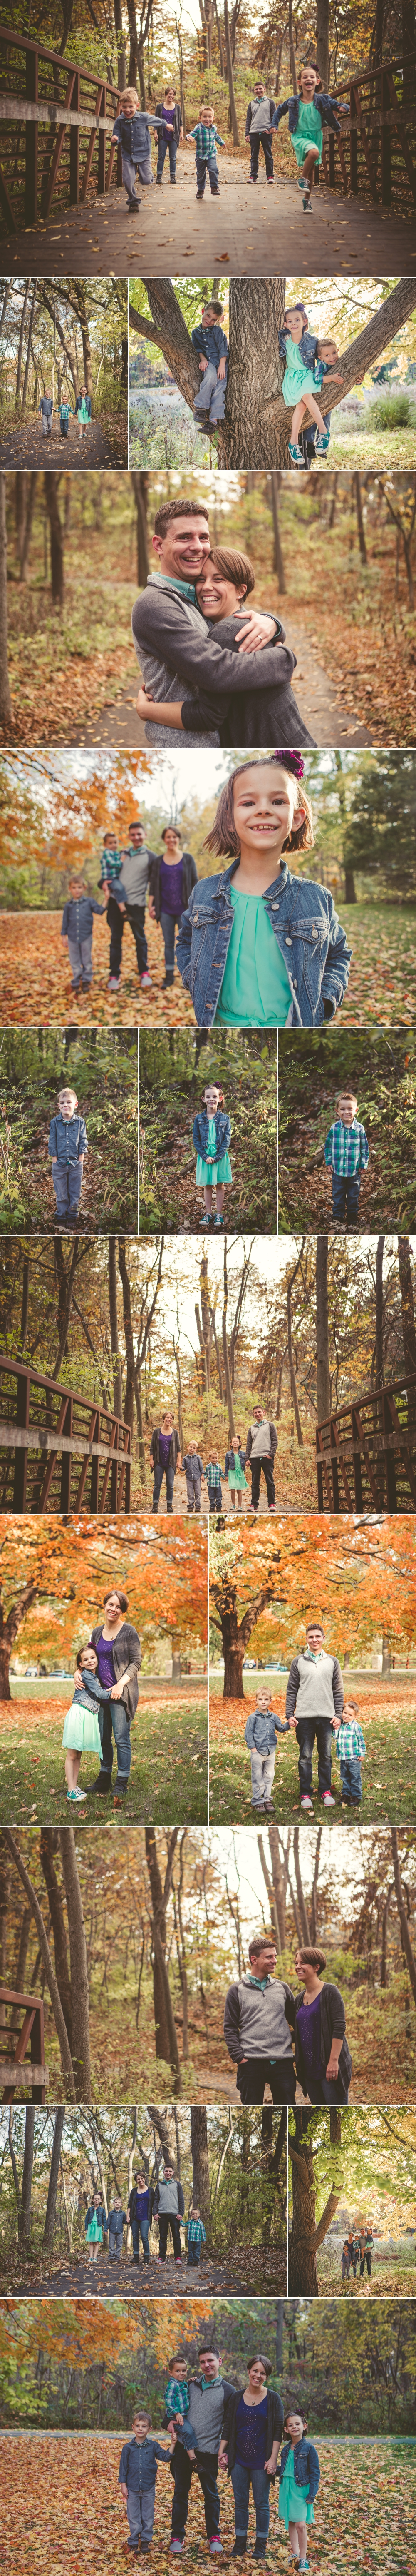 jason_domingues_photography_best_kansas_city_photographer_family_portrait_session_antioch_park